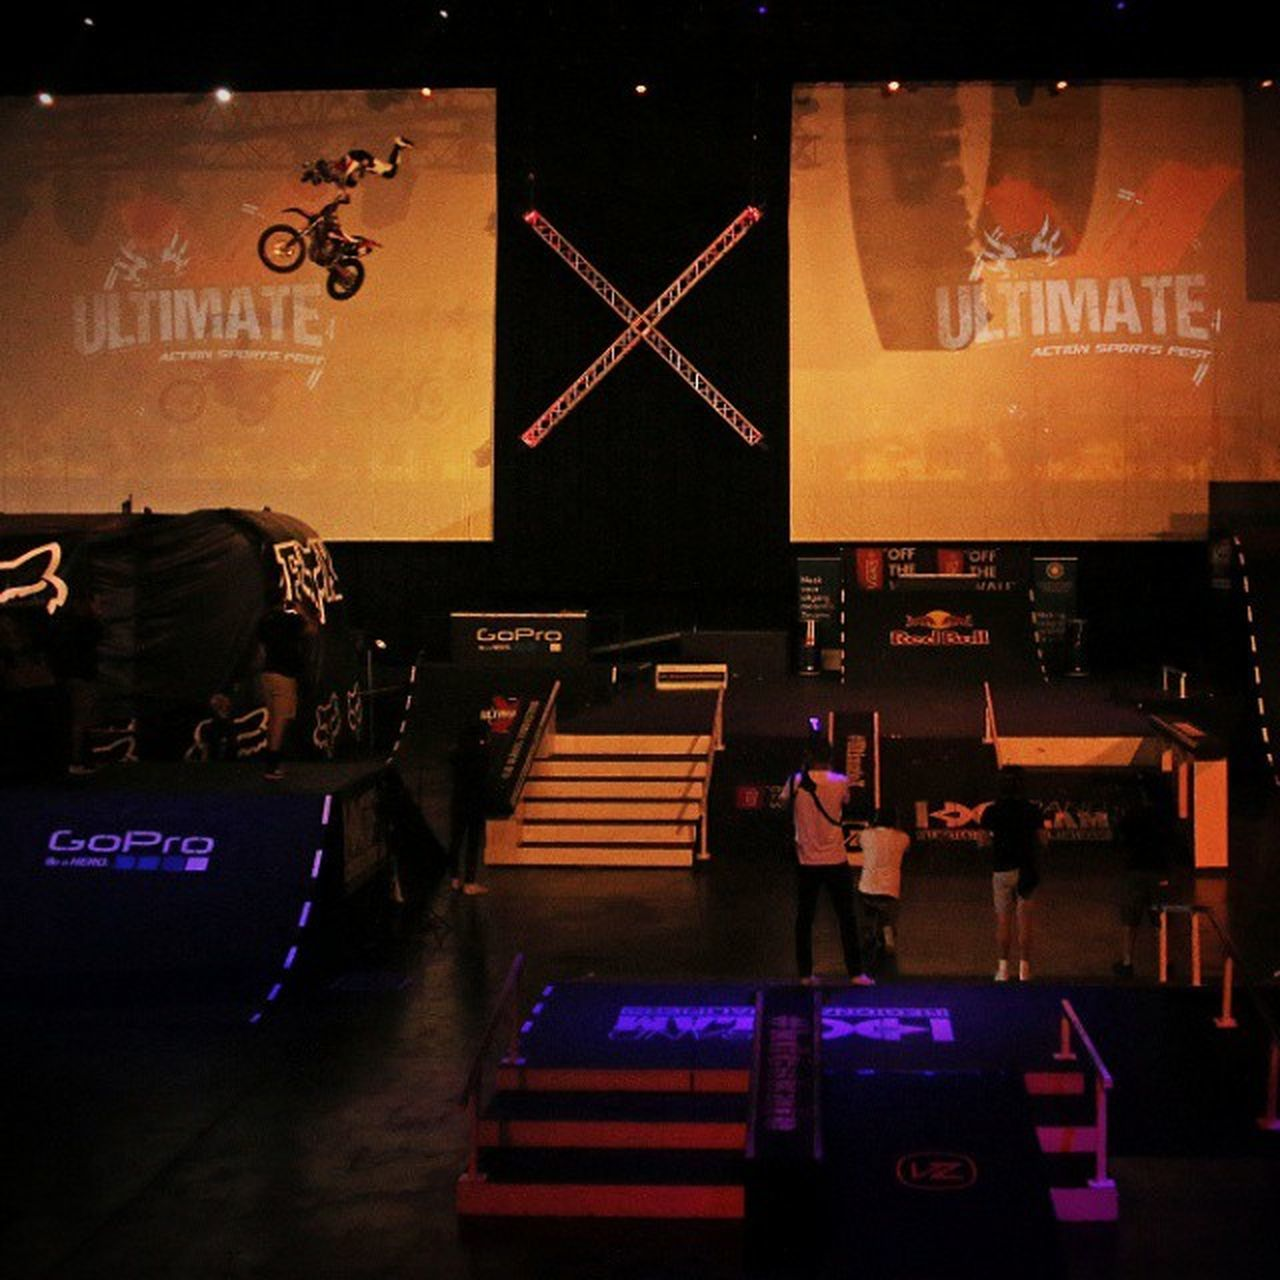 FMX at its best at @ultimatex_ 2015 FMX Bigair Freestyle Motox Flying Extreme Sports Shooteditsleeprepeat